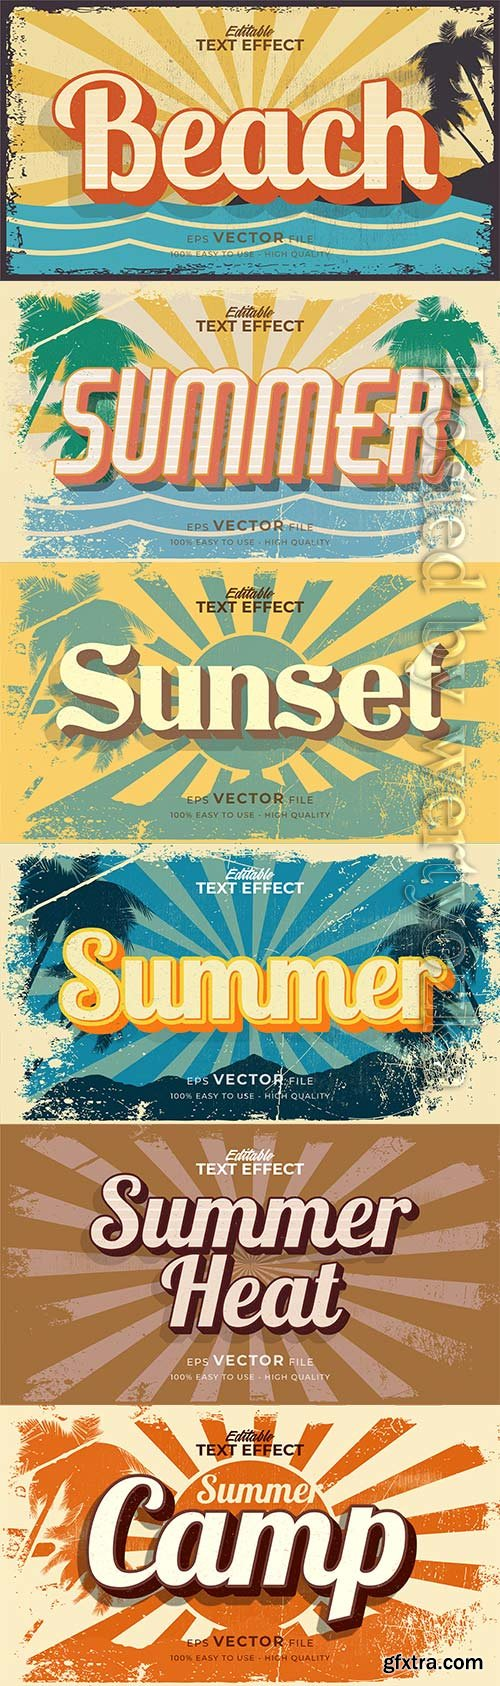 Text style effect, retro summer text in grunge style